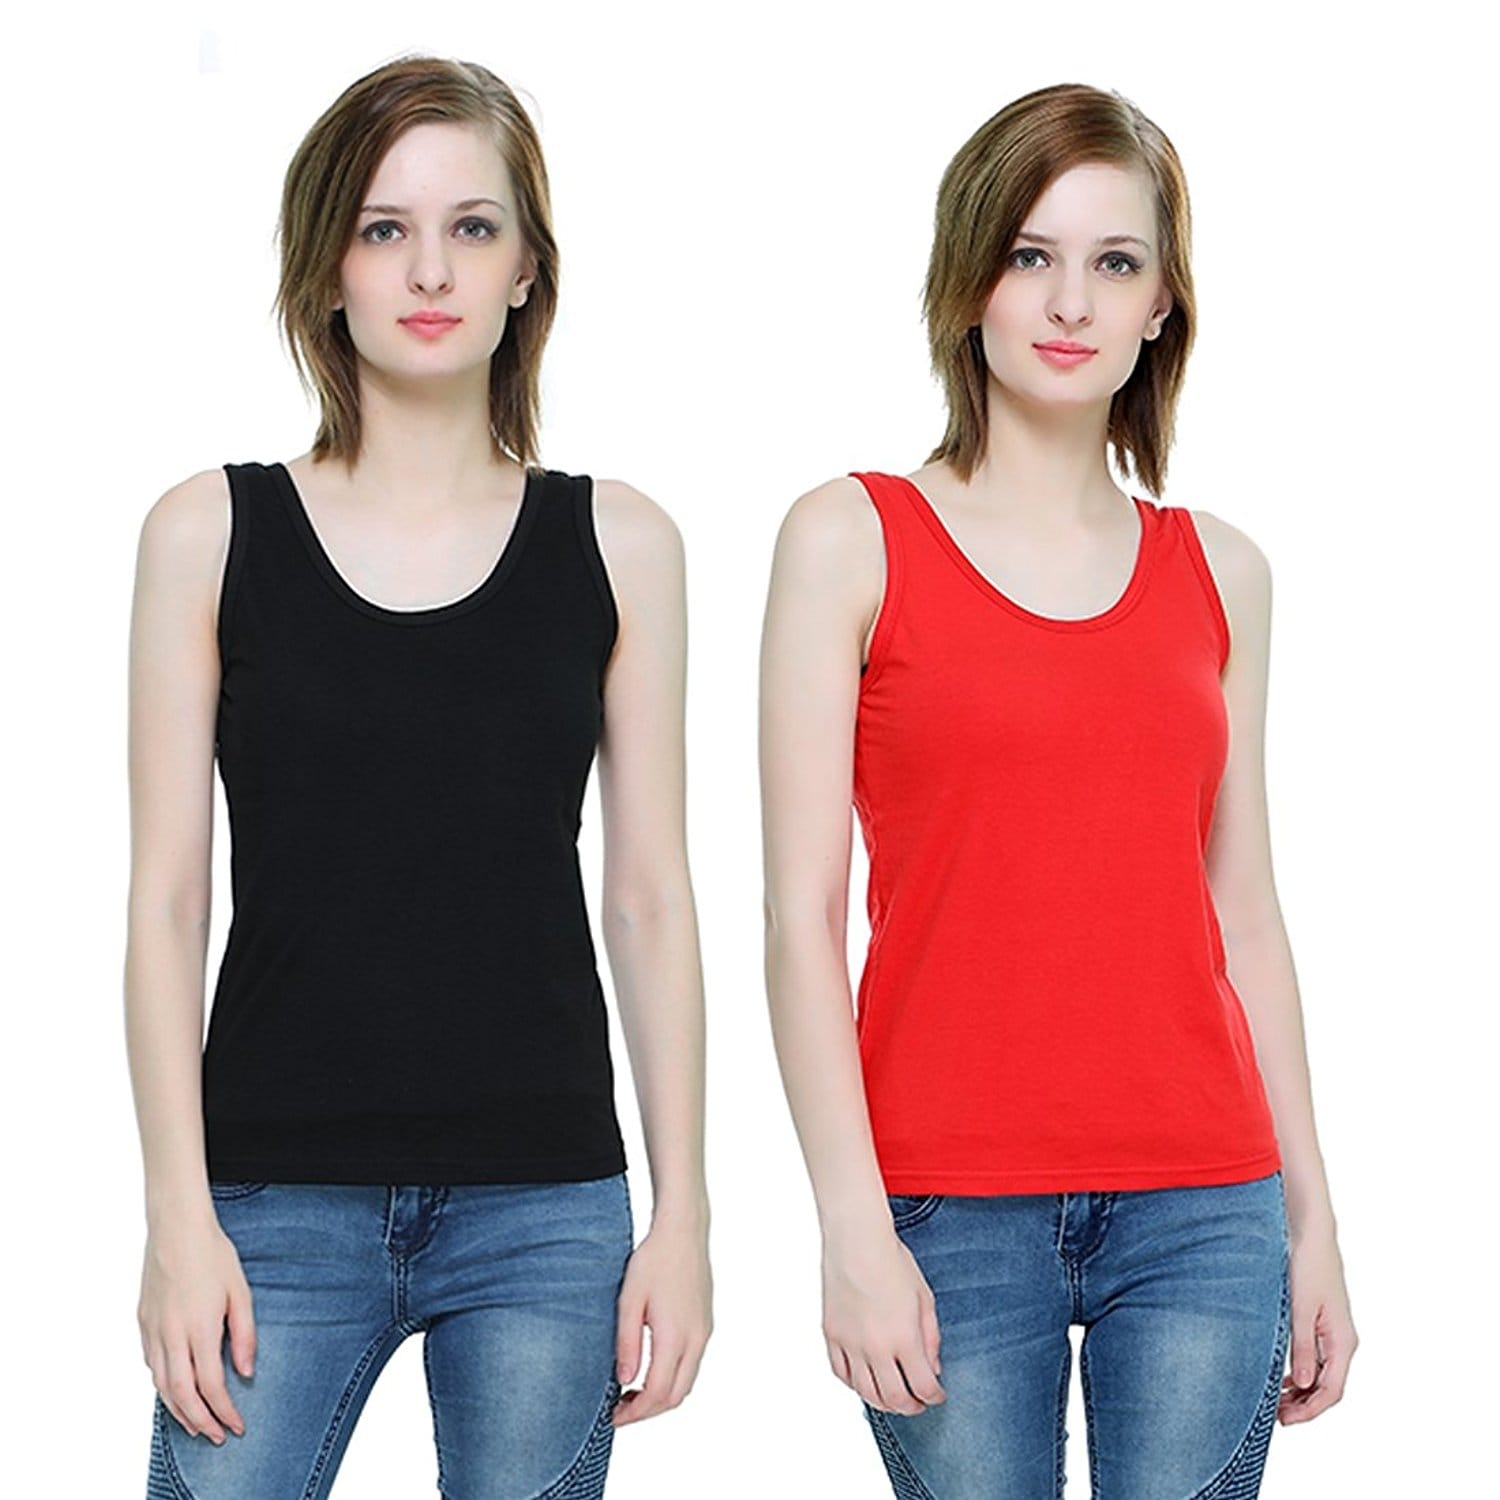 The Hex Cotton Round Neck Tank Top For Women's (Black,Red) Pack OF 2  #tops #tanktops #womenwear #summerwear #tees  #fashion #womenshirts #clothes  *Price Rs. 899 *Link https://www.amazon.in/dp/B076BPRYN2